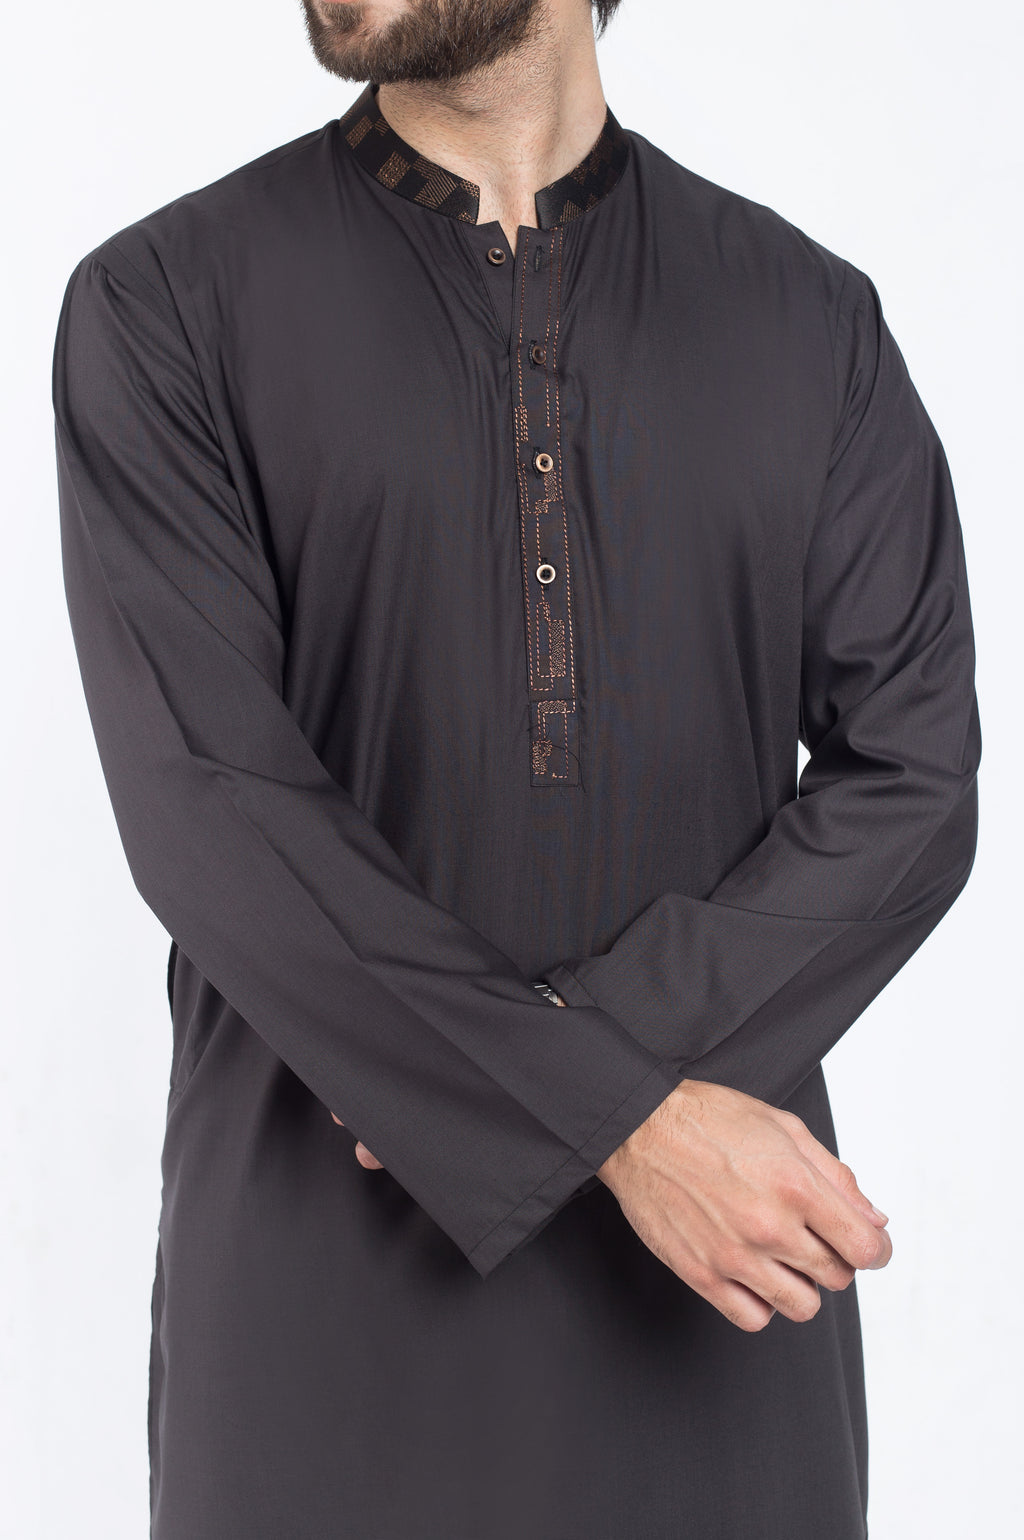 Blackish Grey Shalwar Qameez Suit. RQ-39410